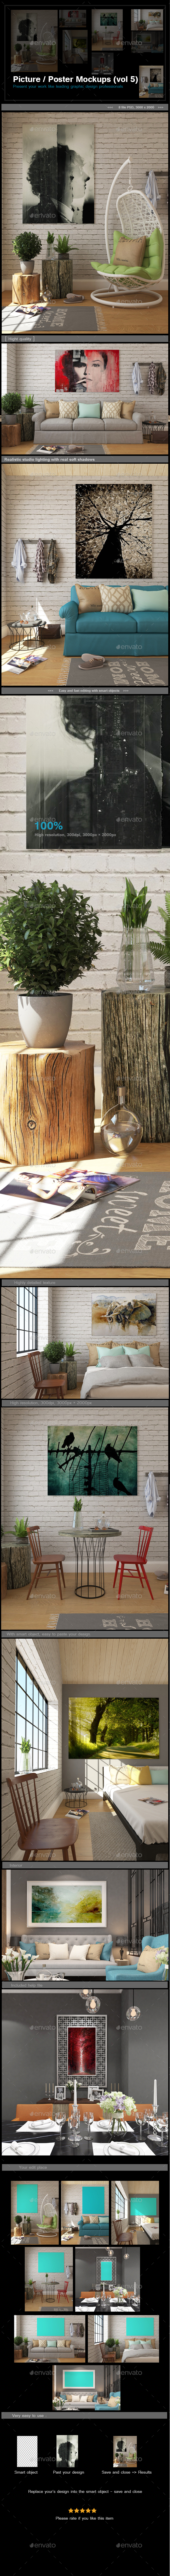 Picture / Poster Mockups [vol5] - Posters Print